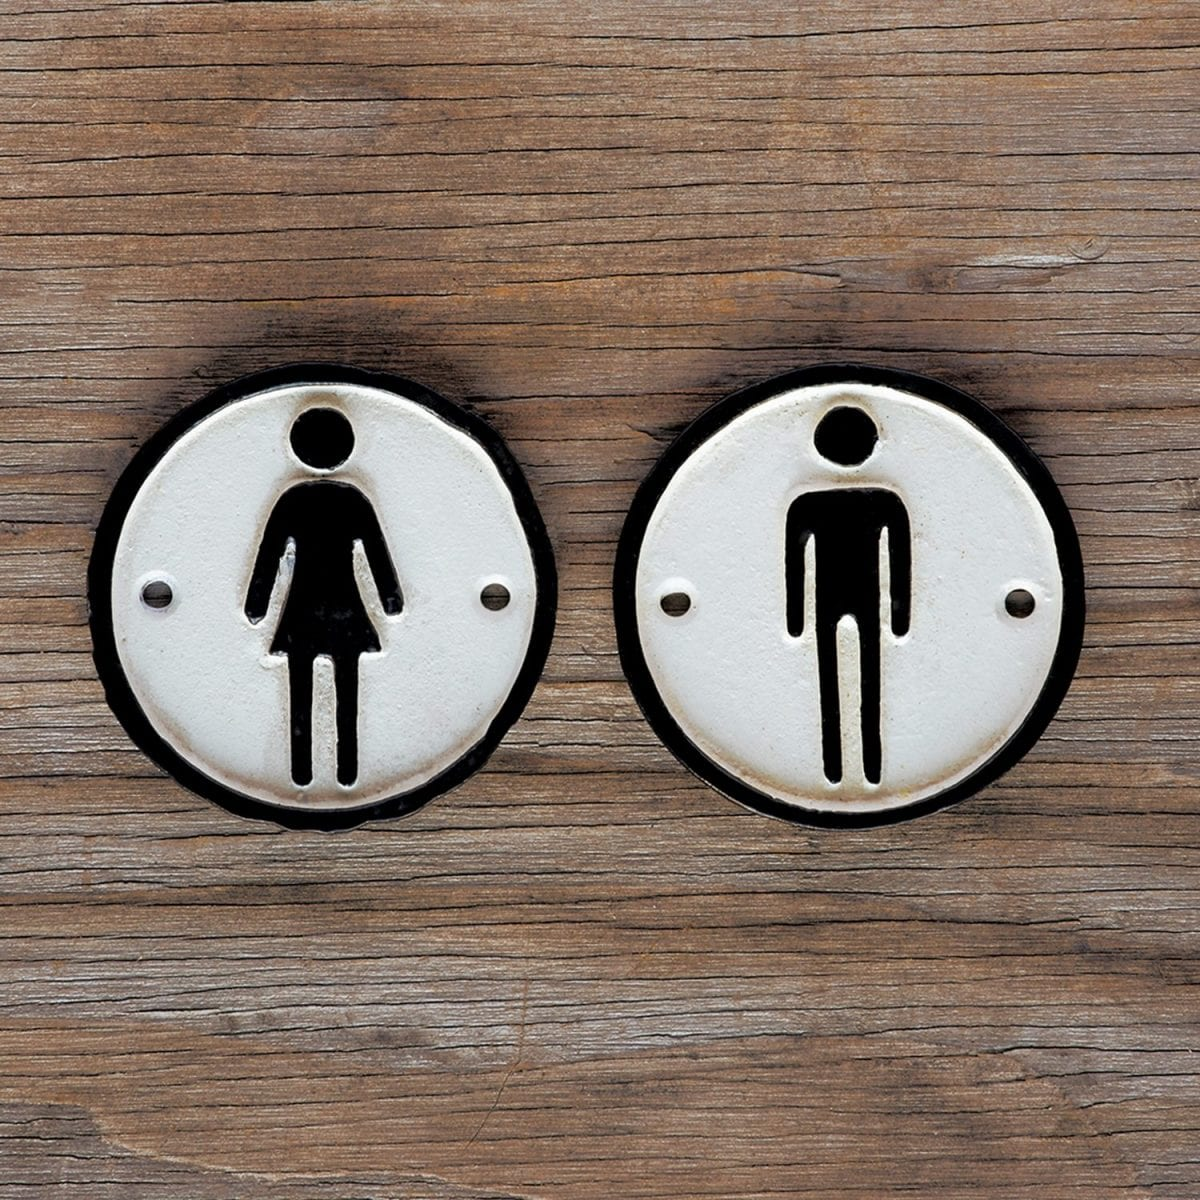 man_and_woman_cast_iron_signs